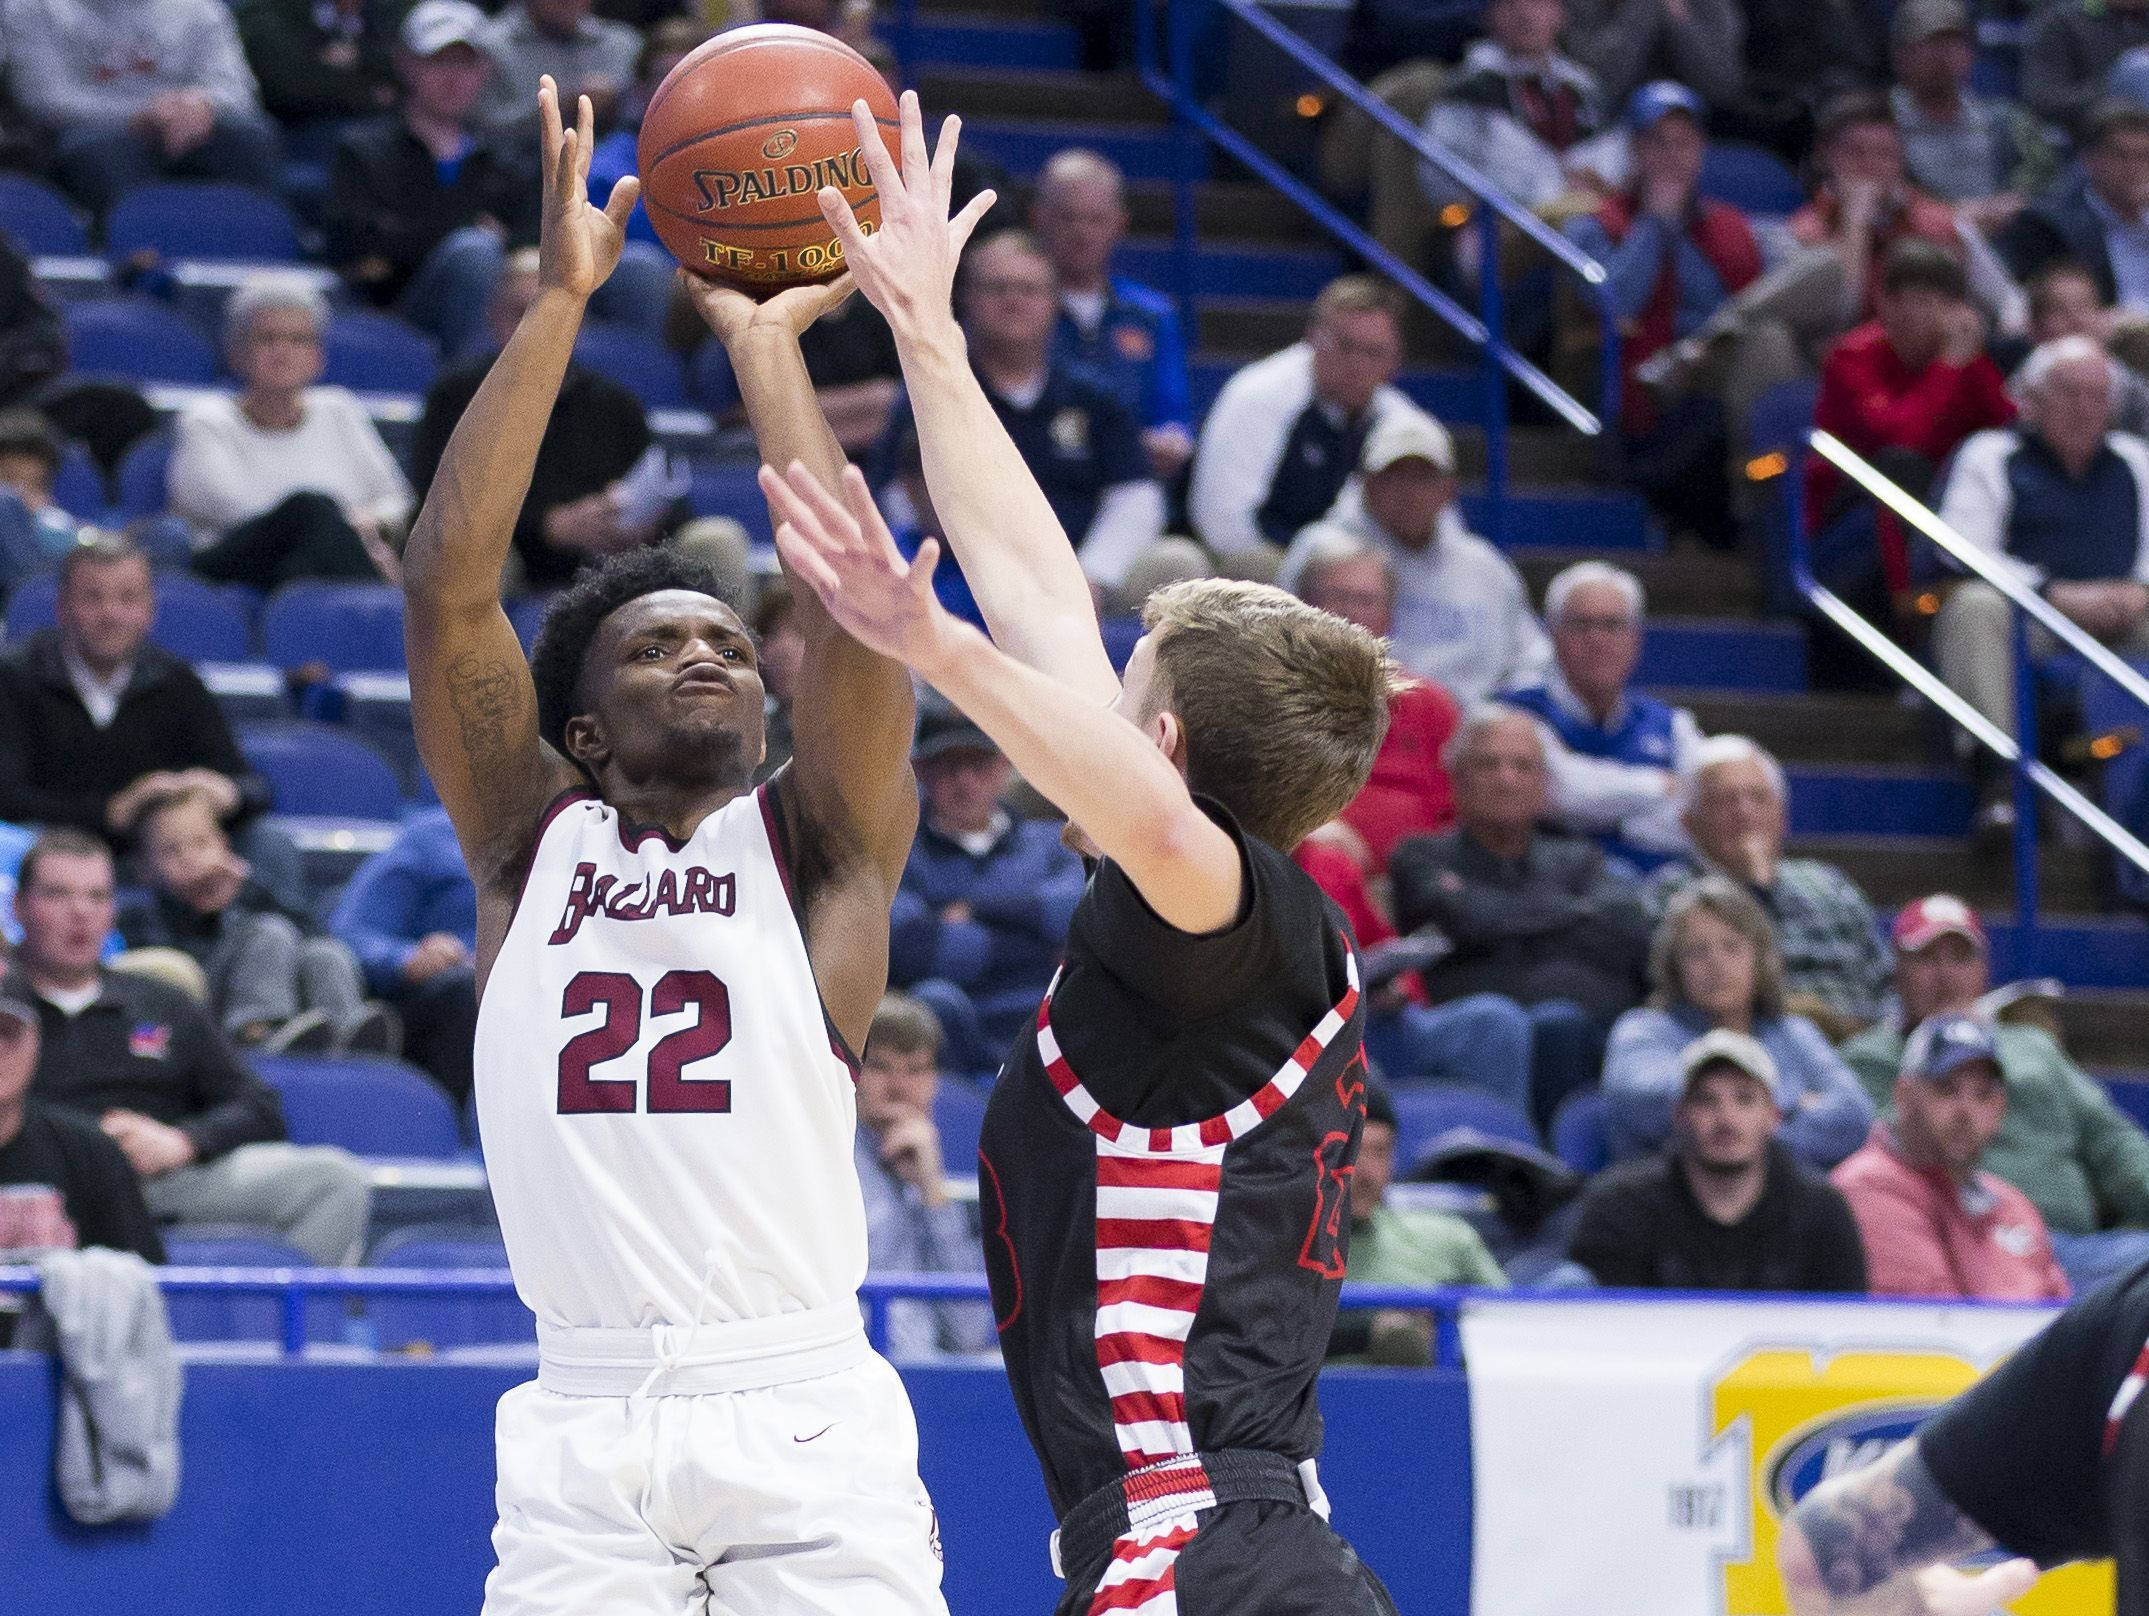 Ballard's Jamil Wilson shoots the ball during the first round game of the KHSAA Boy's Sweet Sixteen against Taylor County.